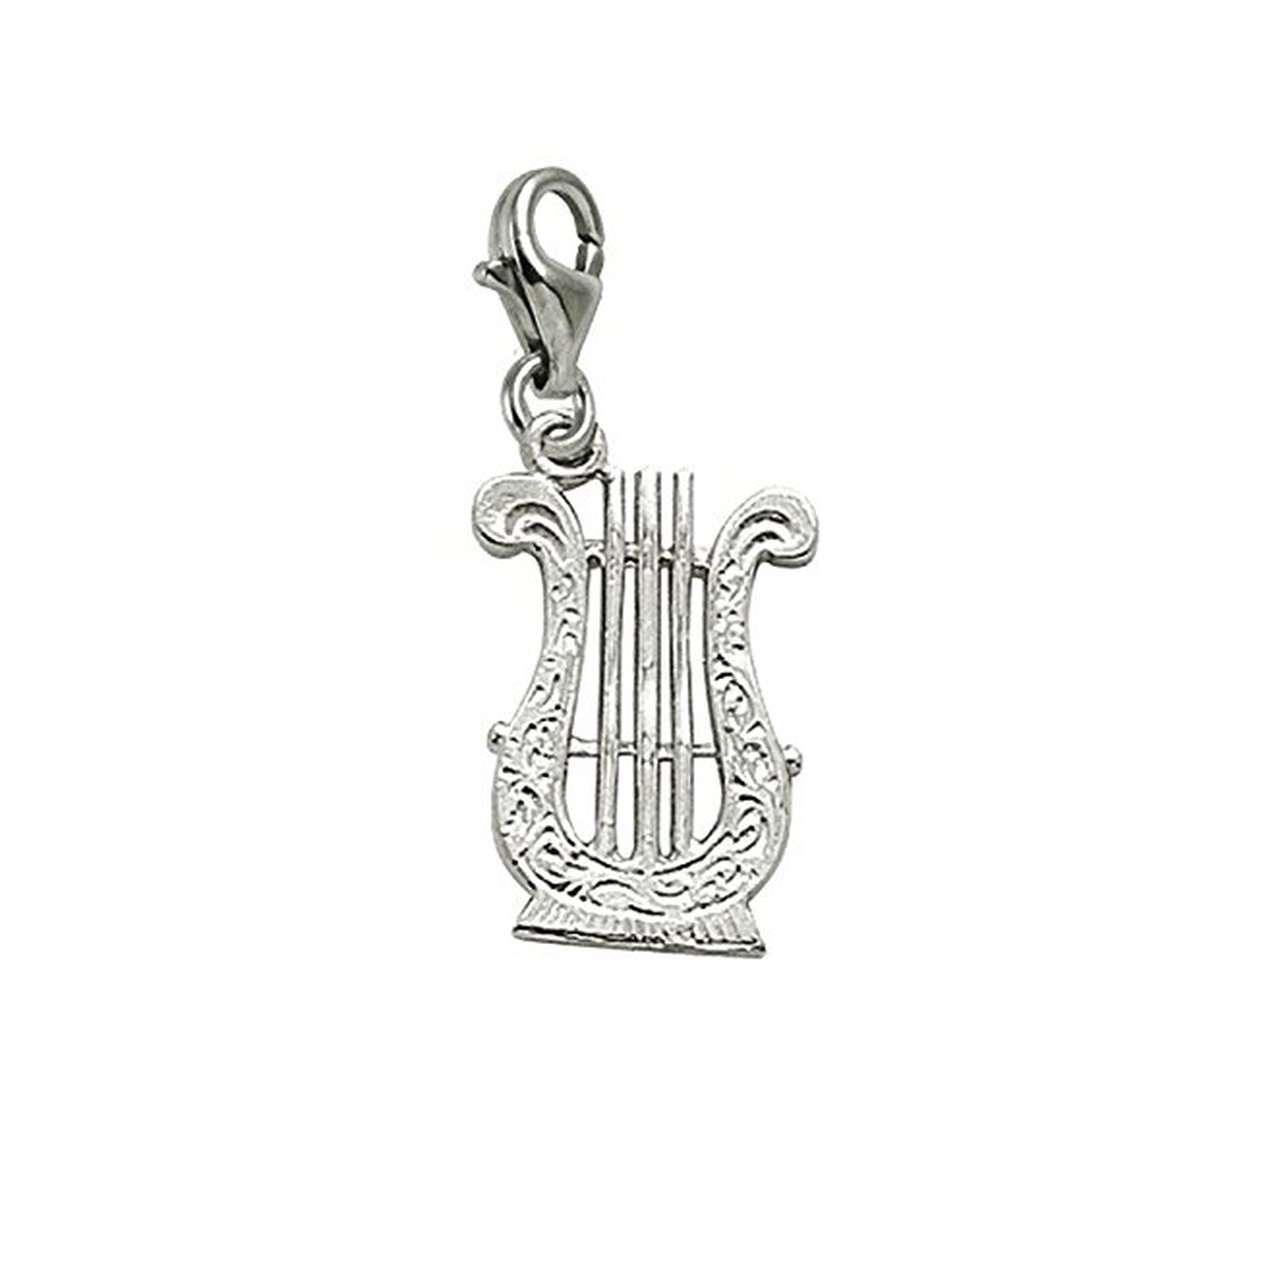 Sterling Silver Lyre Charm With Lobster Claw Clasp, Charms for Bracelets and Necklaces